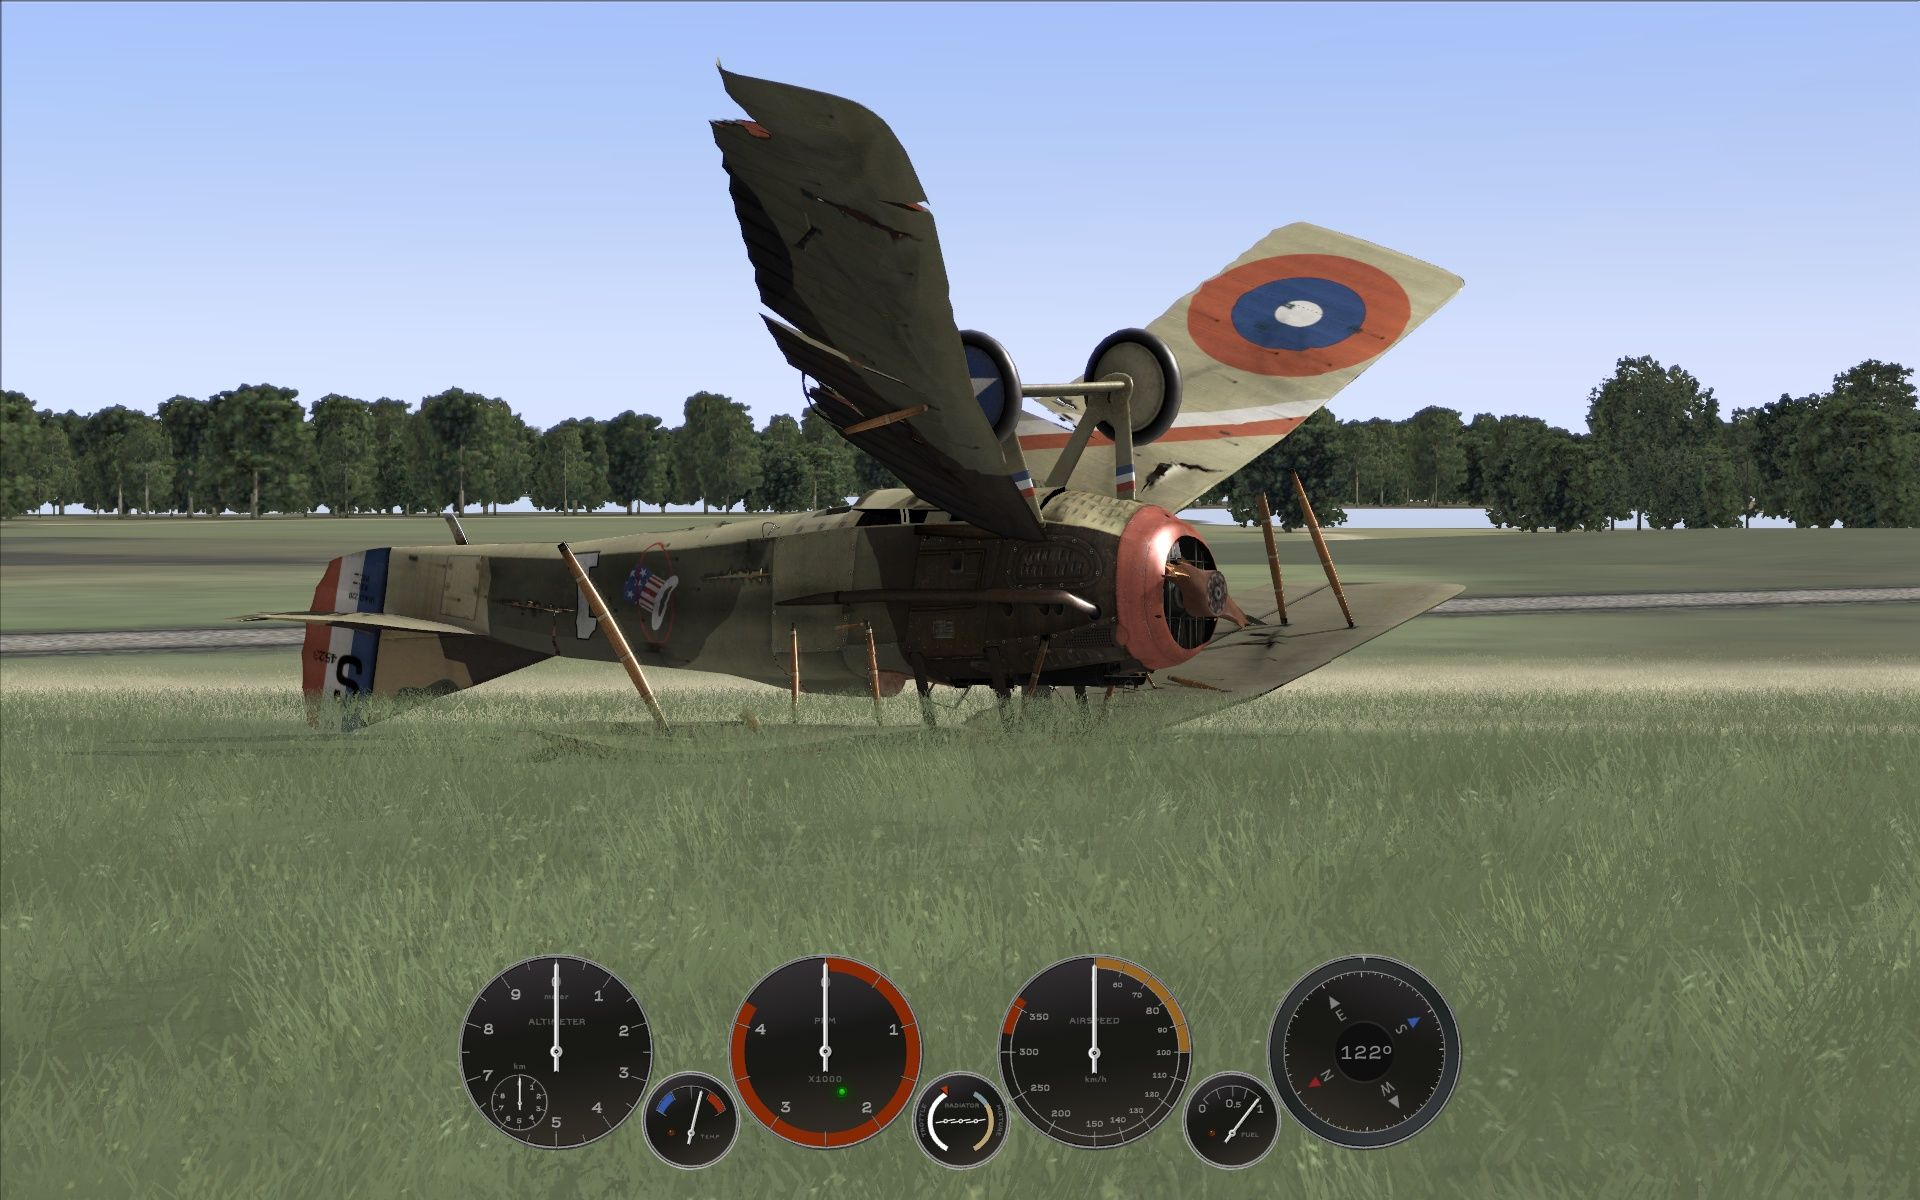 http://www.mobygames.com/images/shots/l/378676-rise-of-flight-the-first-great-air-war-windows-screenshot.jpg